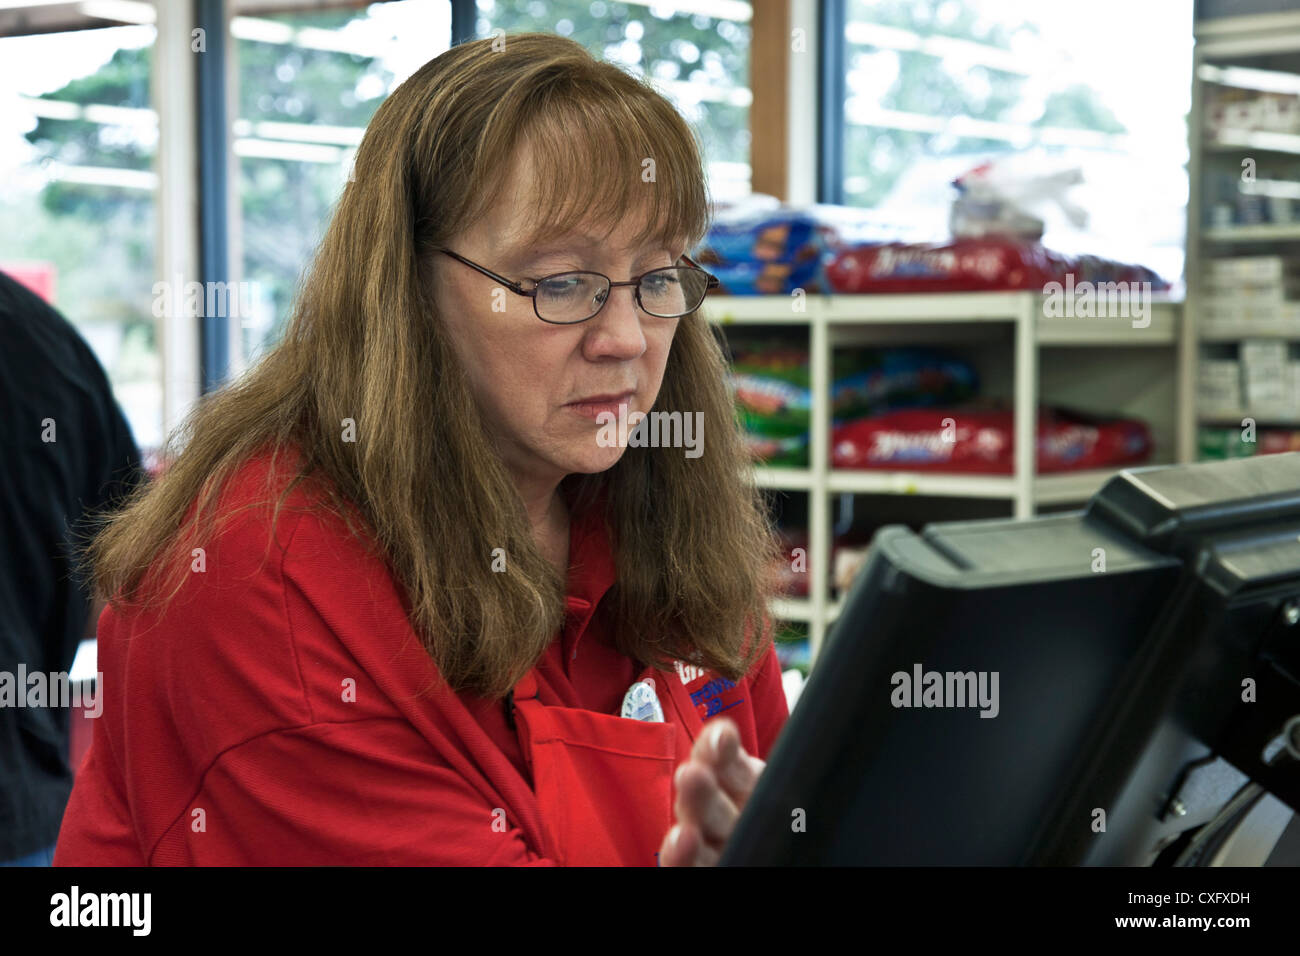 middle aged woman supermarket clerk concentrates on her register in small local supermarket in town of Long Beach - Stock Image